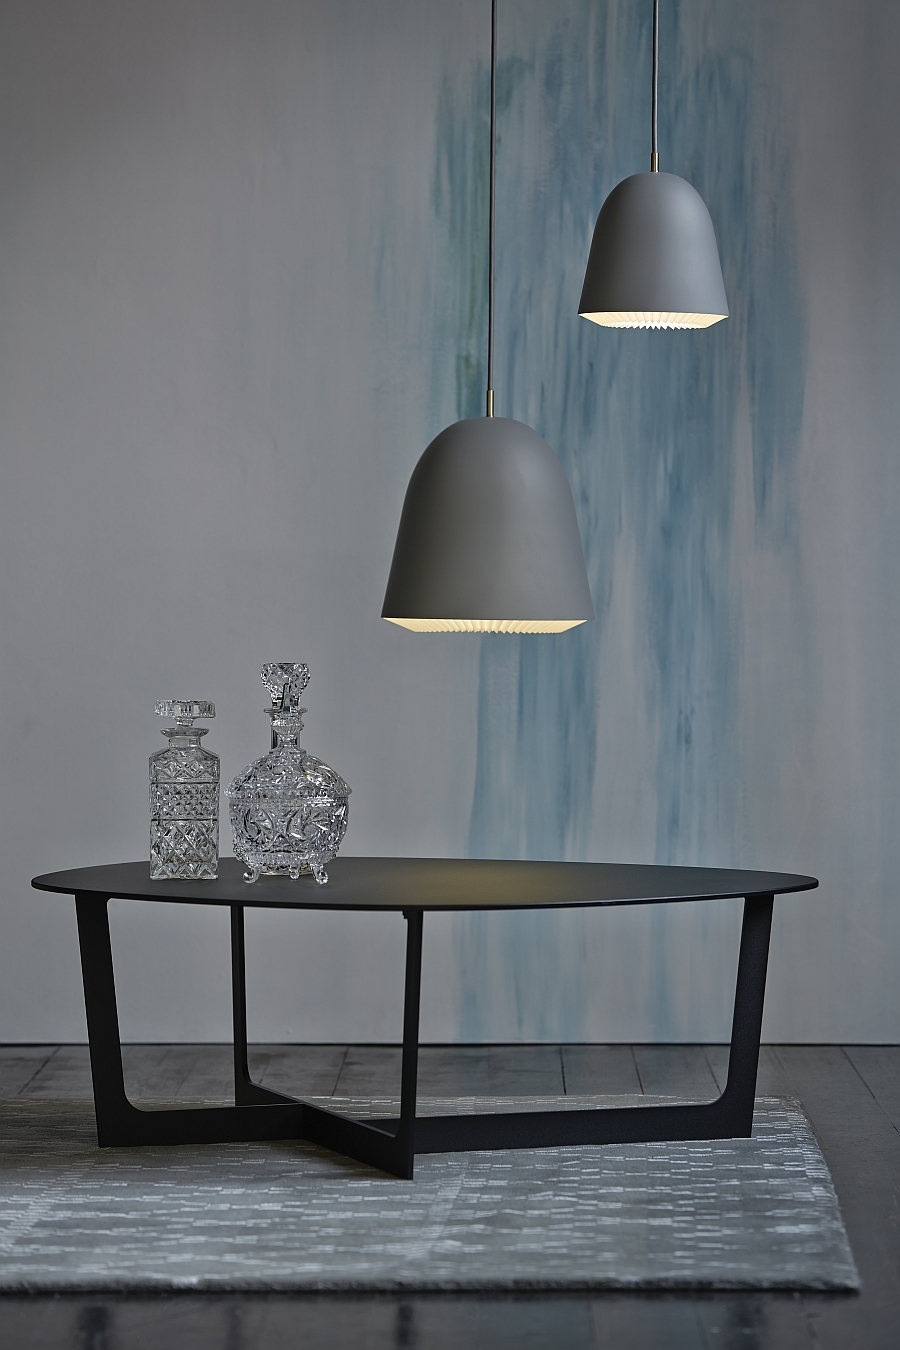 Trendy Cache pendants look great in both contemporary and industrial settings